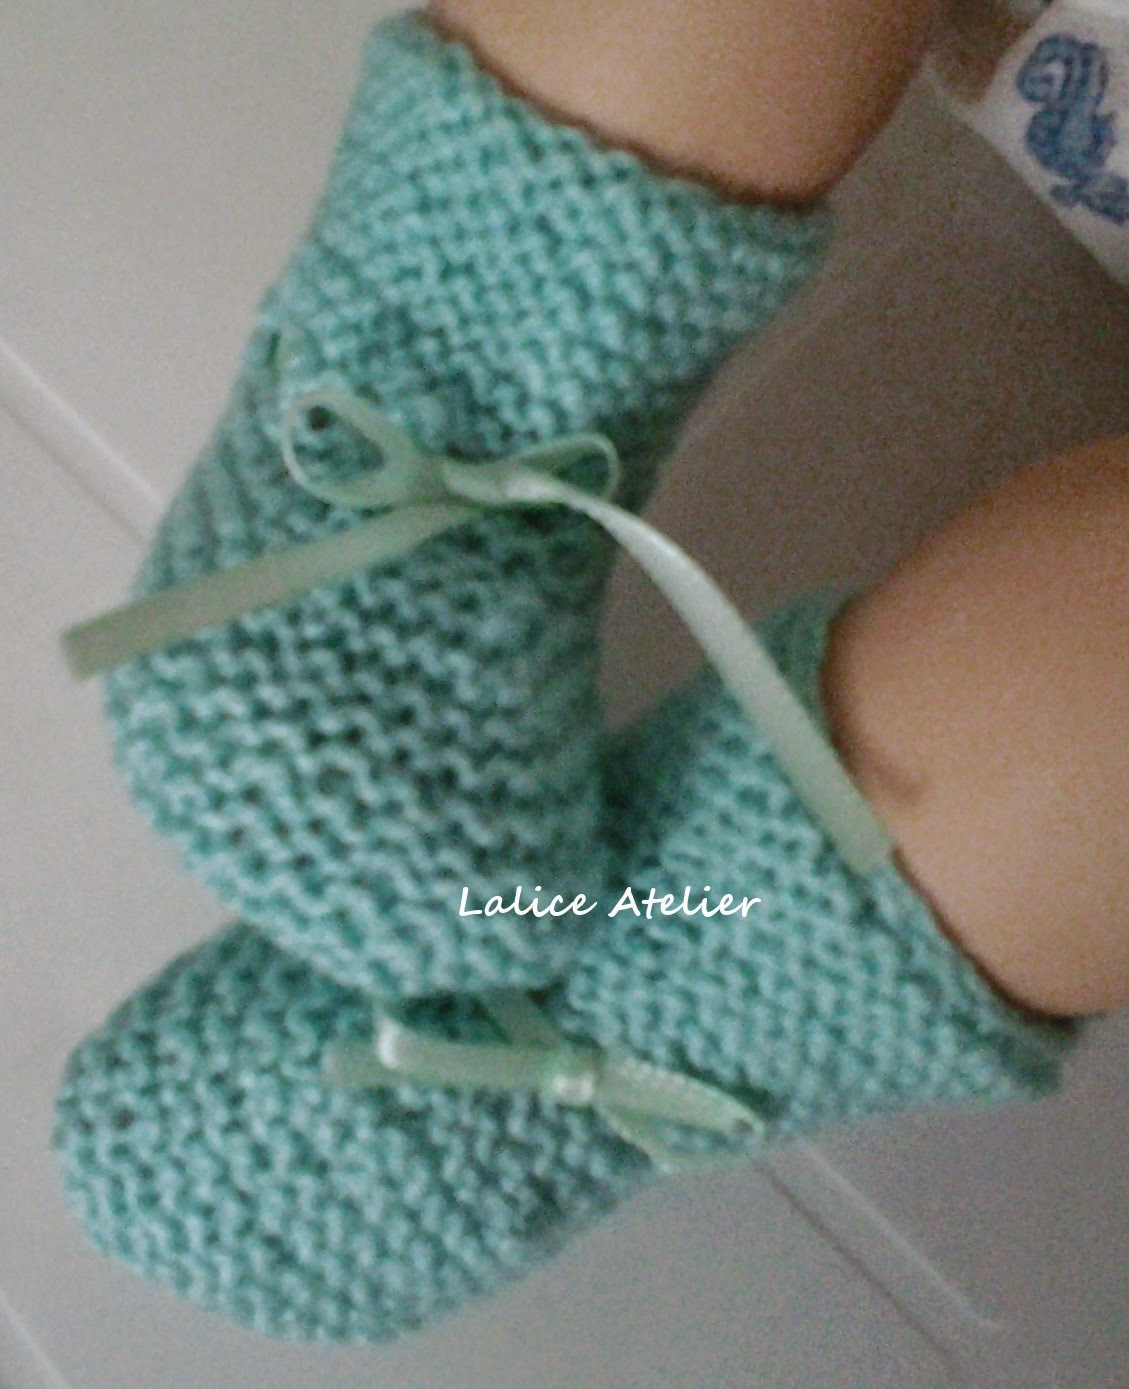 premature baby shoes, knitting baby shoes, baby shoes